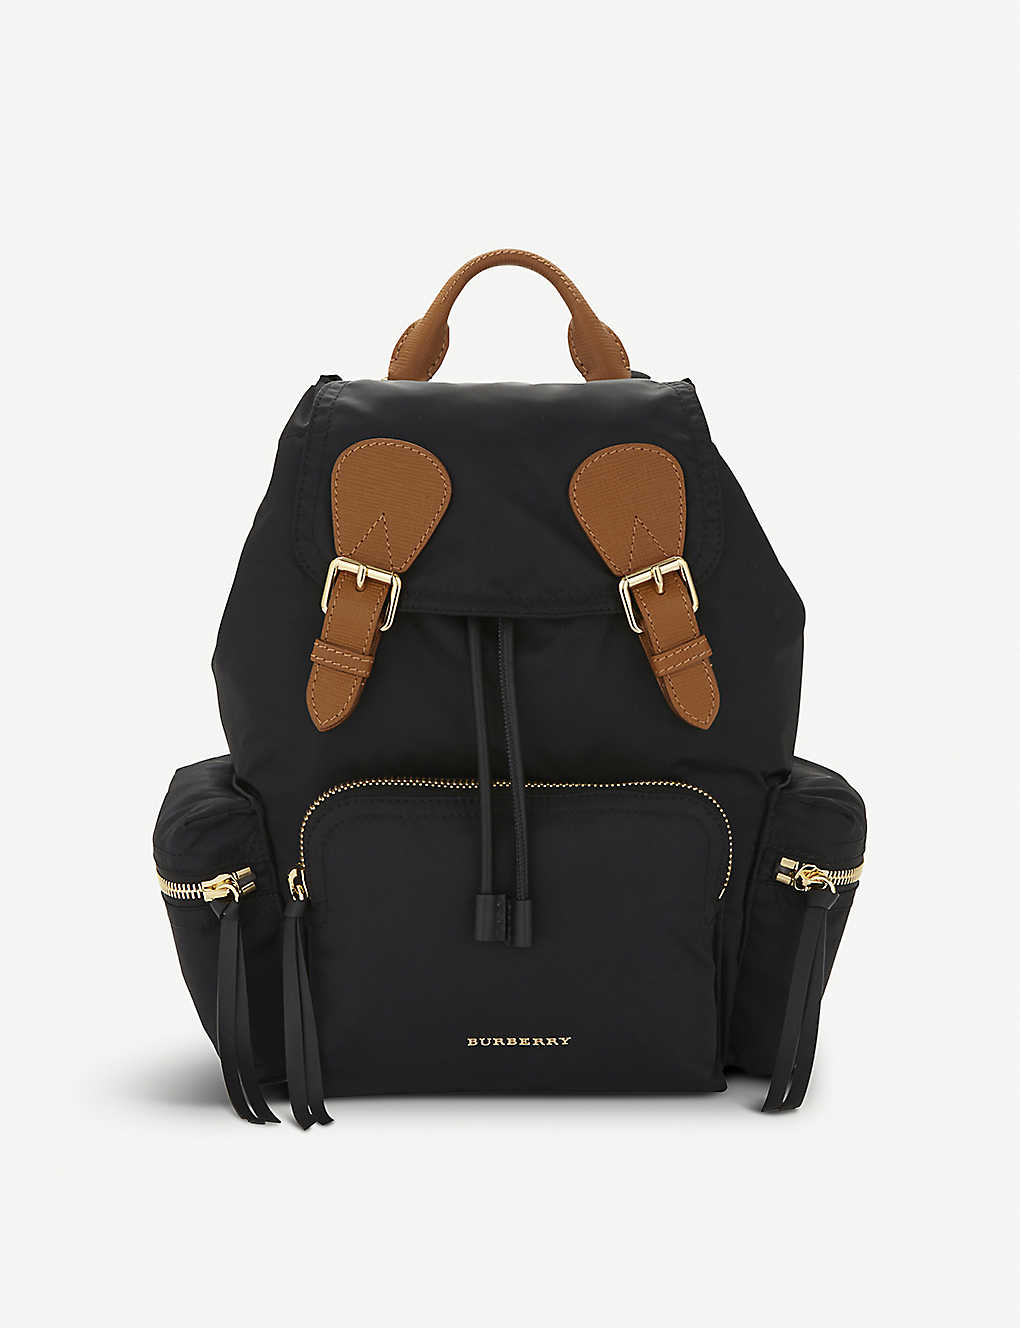 18be98b88de3a BURBERRY - Medium nylon backpack